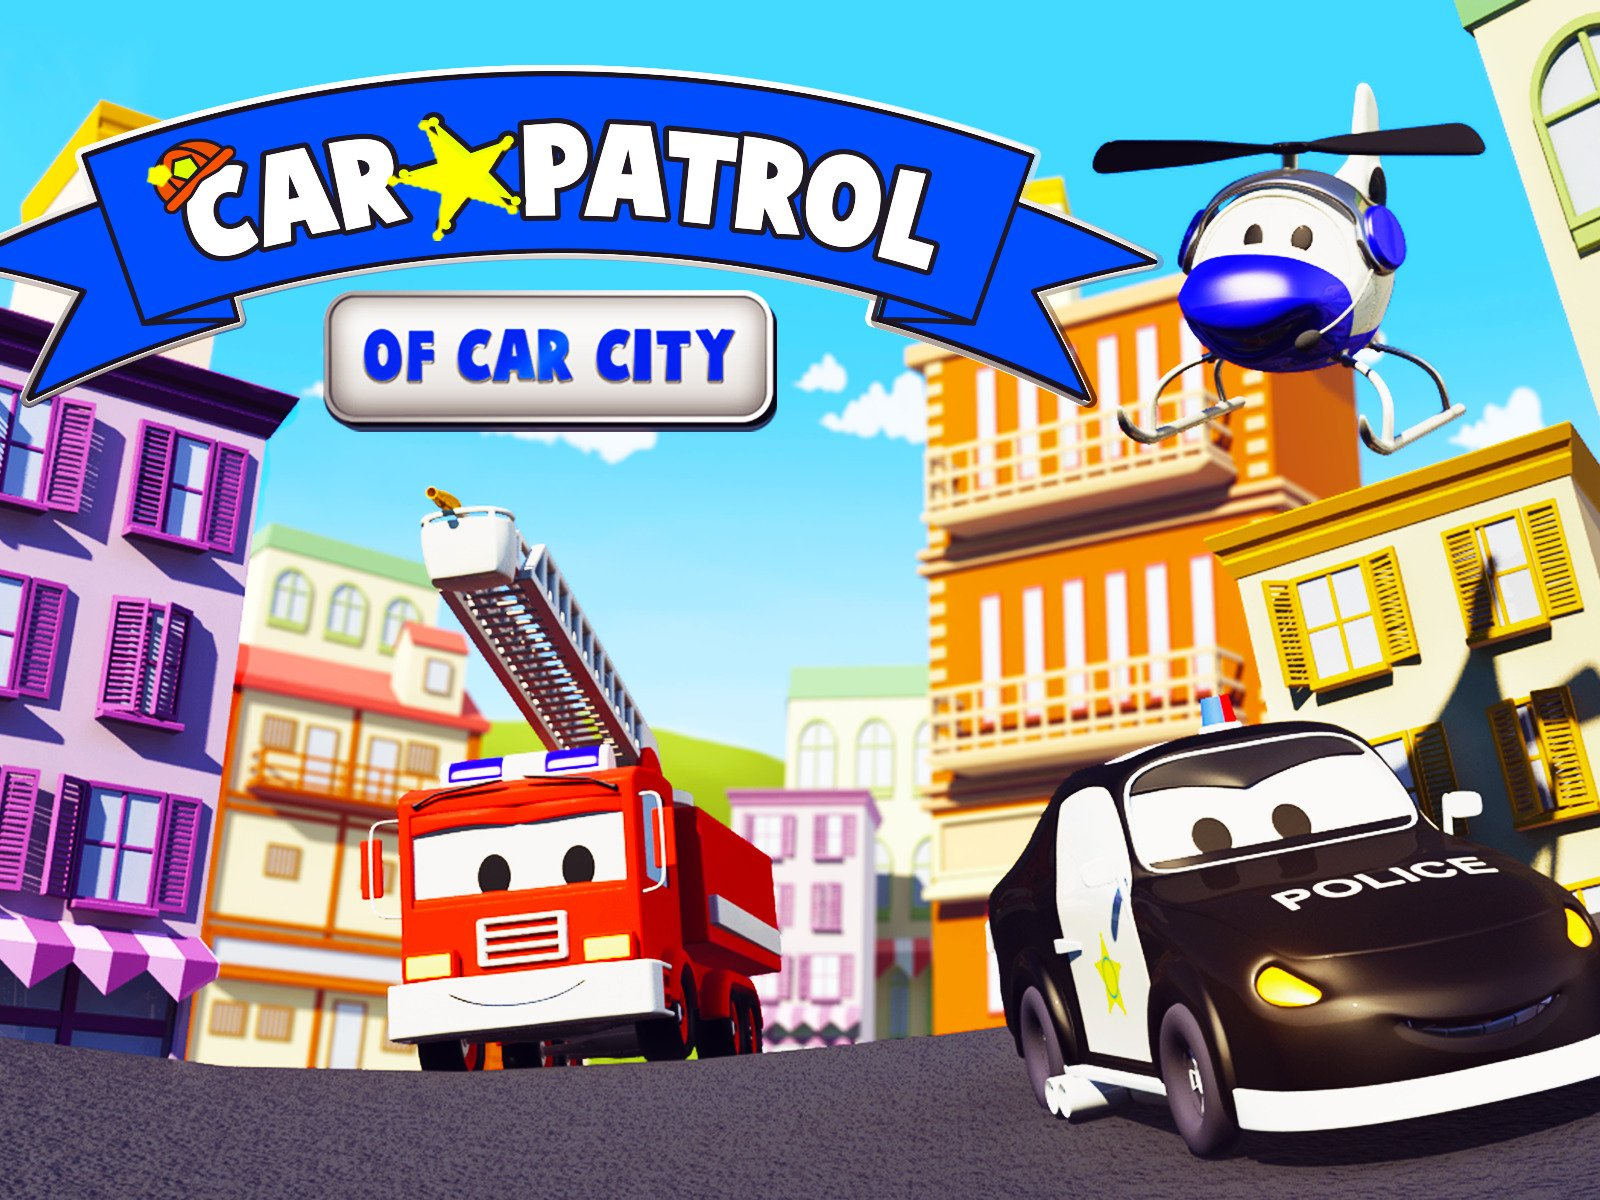 Car Patrol of Car City - Season 3